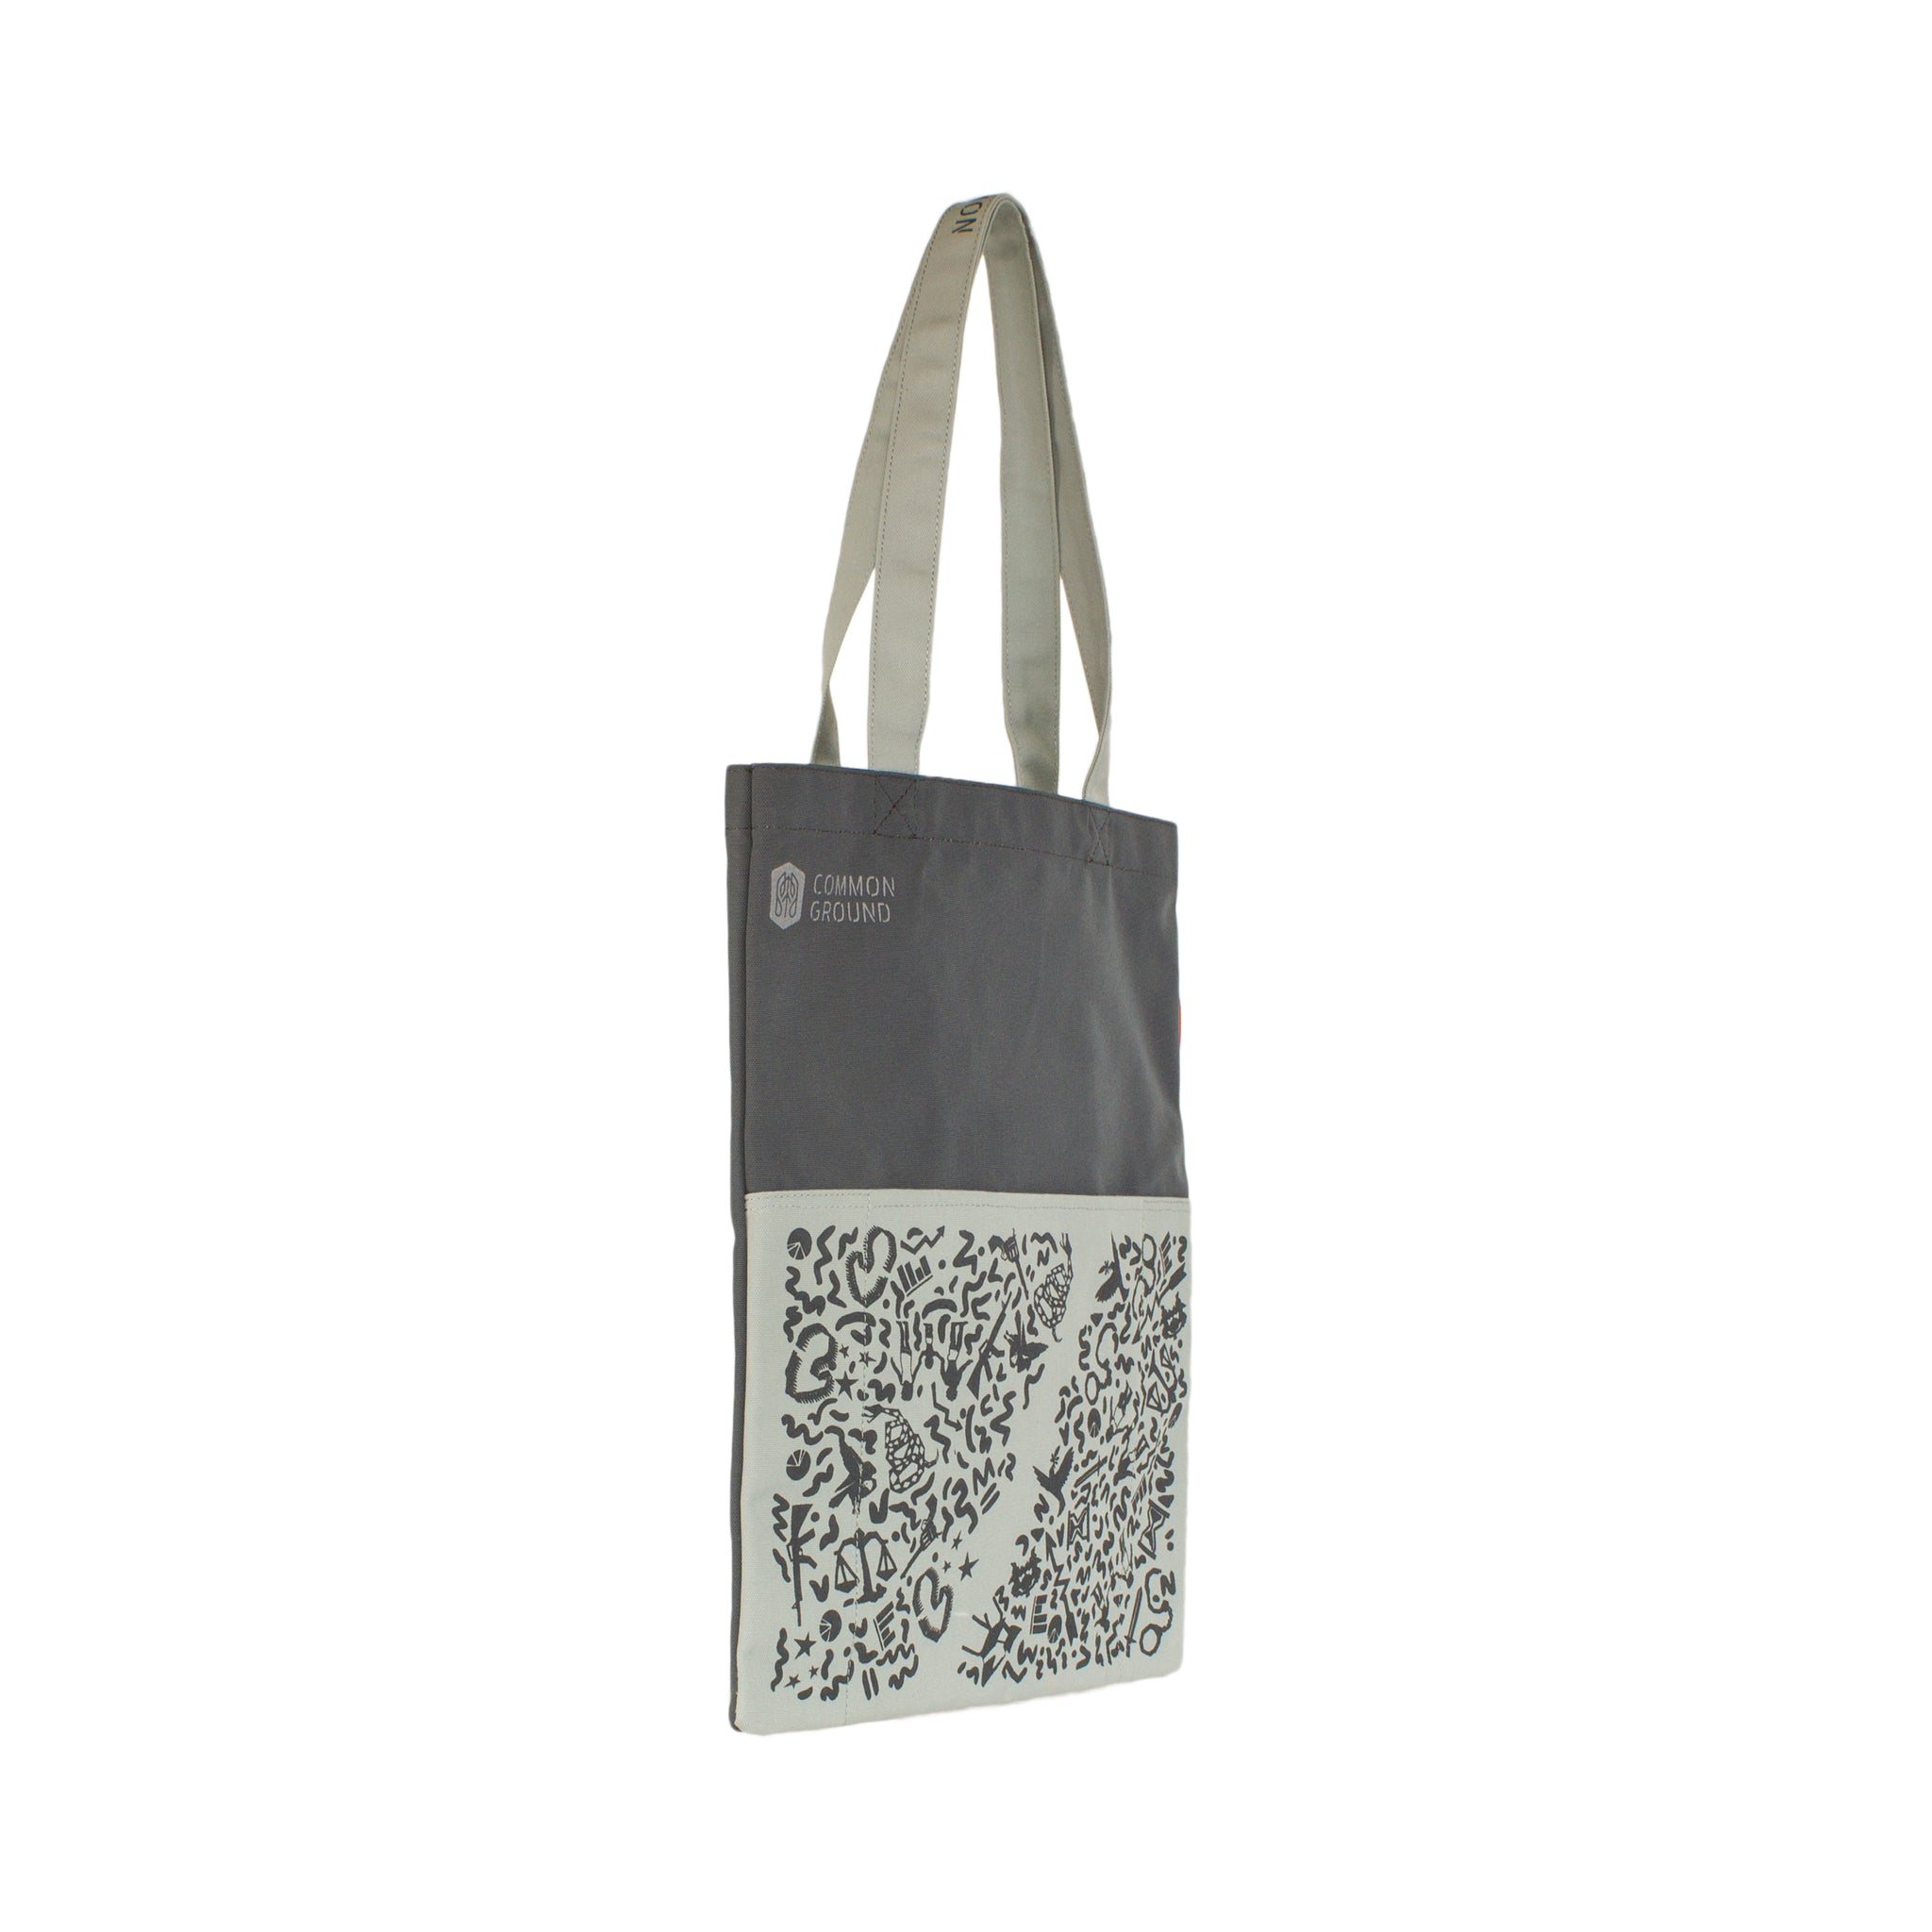 Castle_Rock - Common Ground Reading Tote Three Quarter View